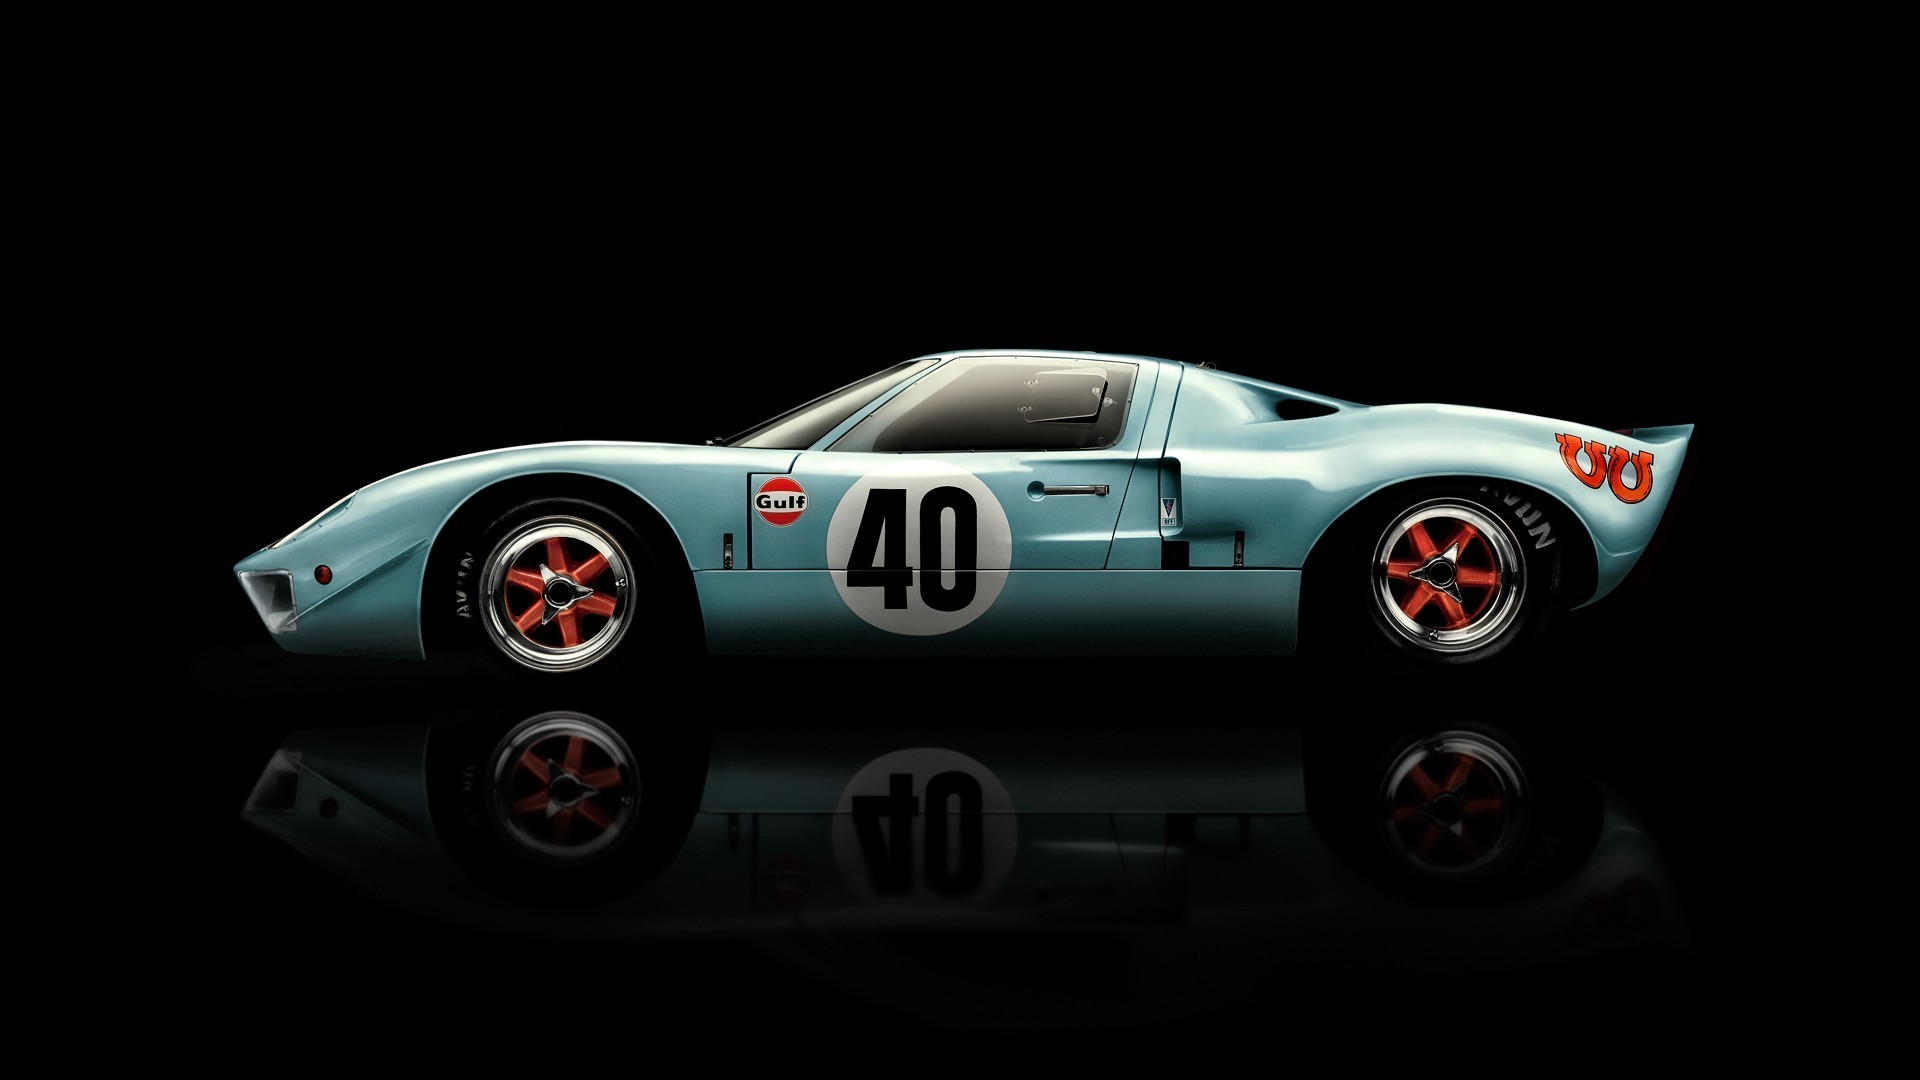 Res: 1920x1080, Ford Gt40 High Resolution Wallpaper Free